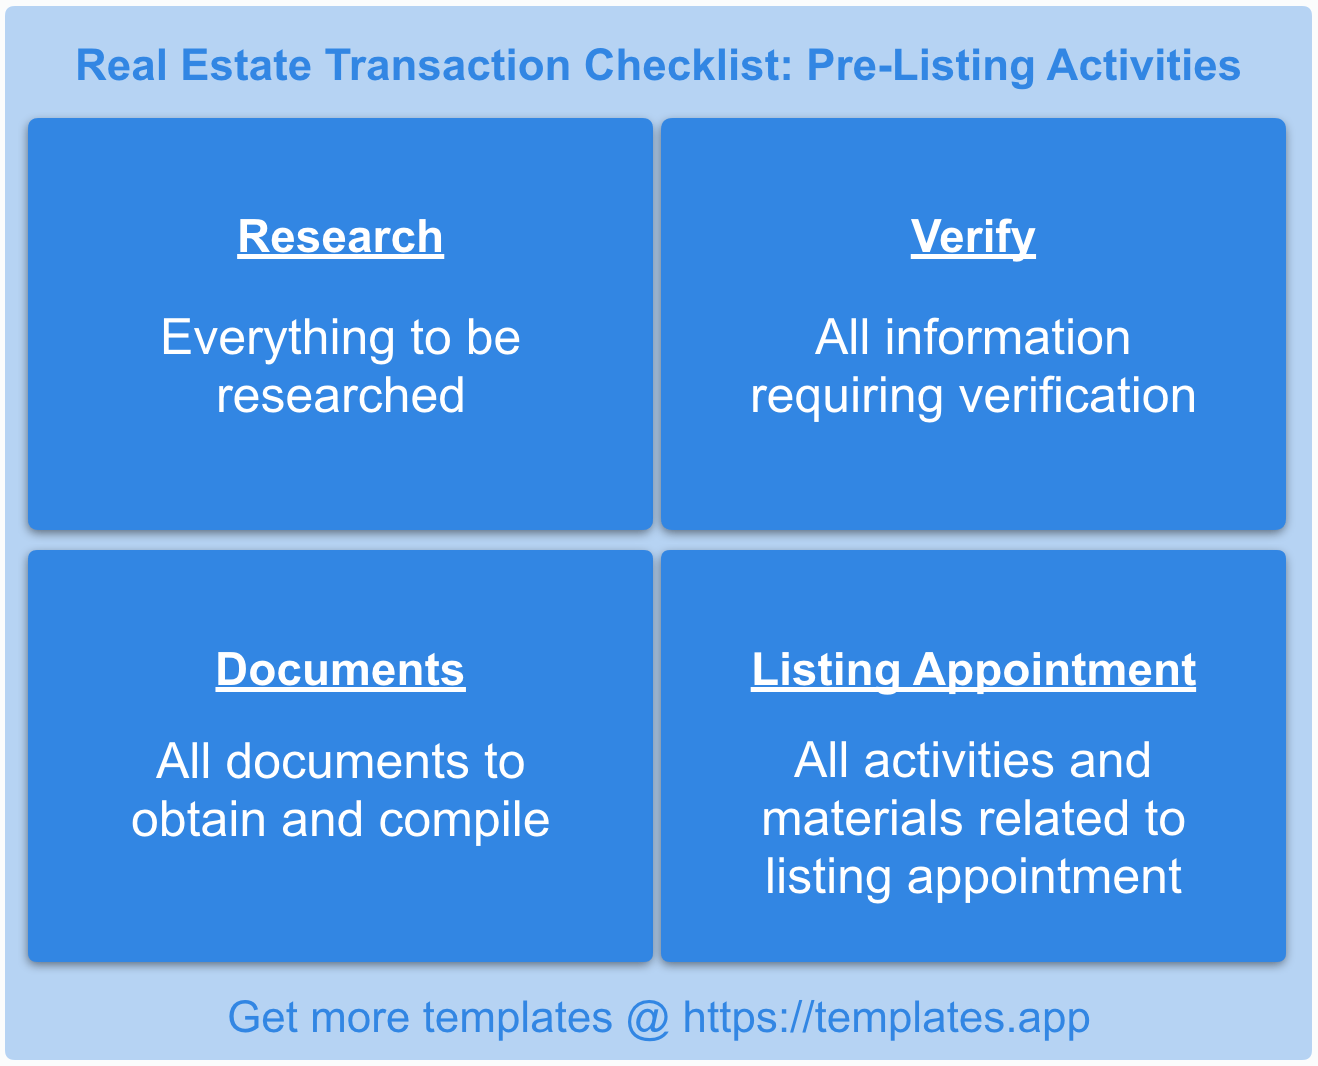 Transaction Checklist For Real Estate Agents  Pre